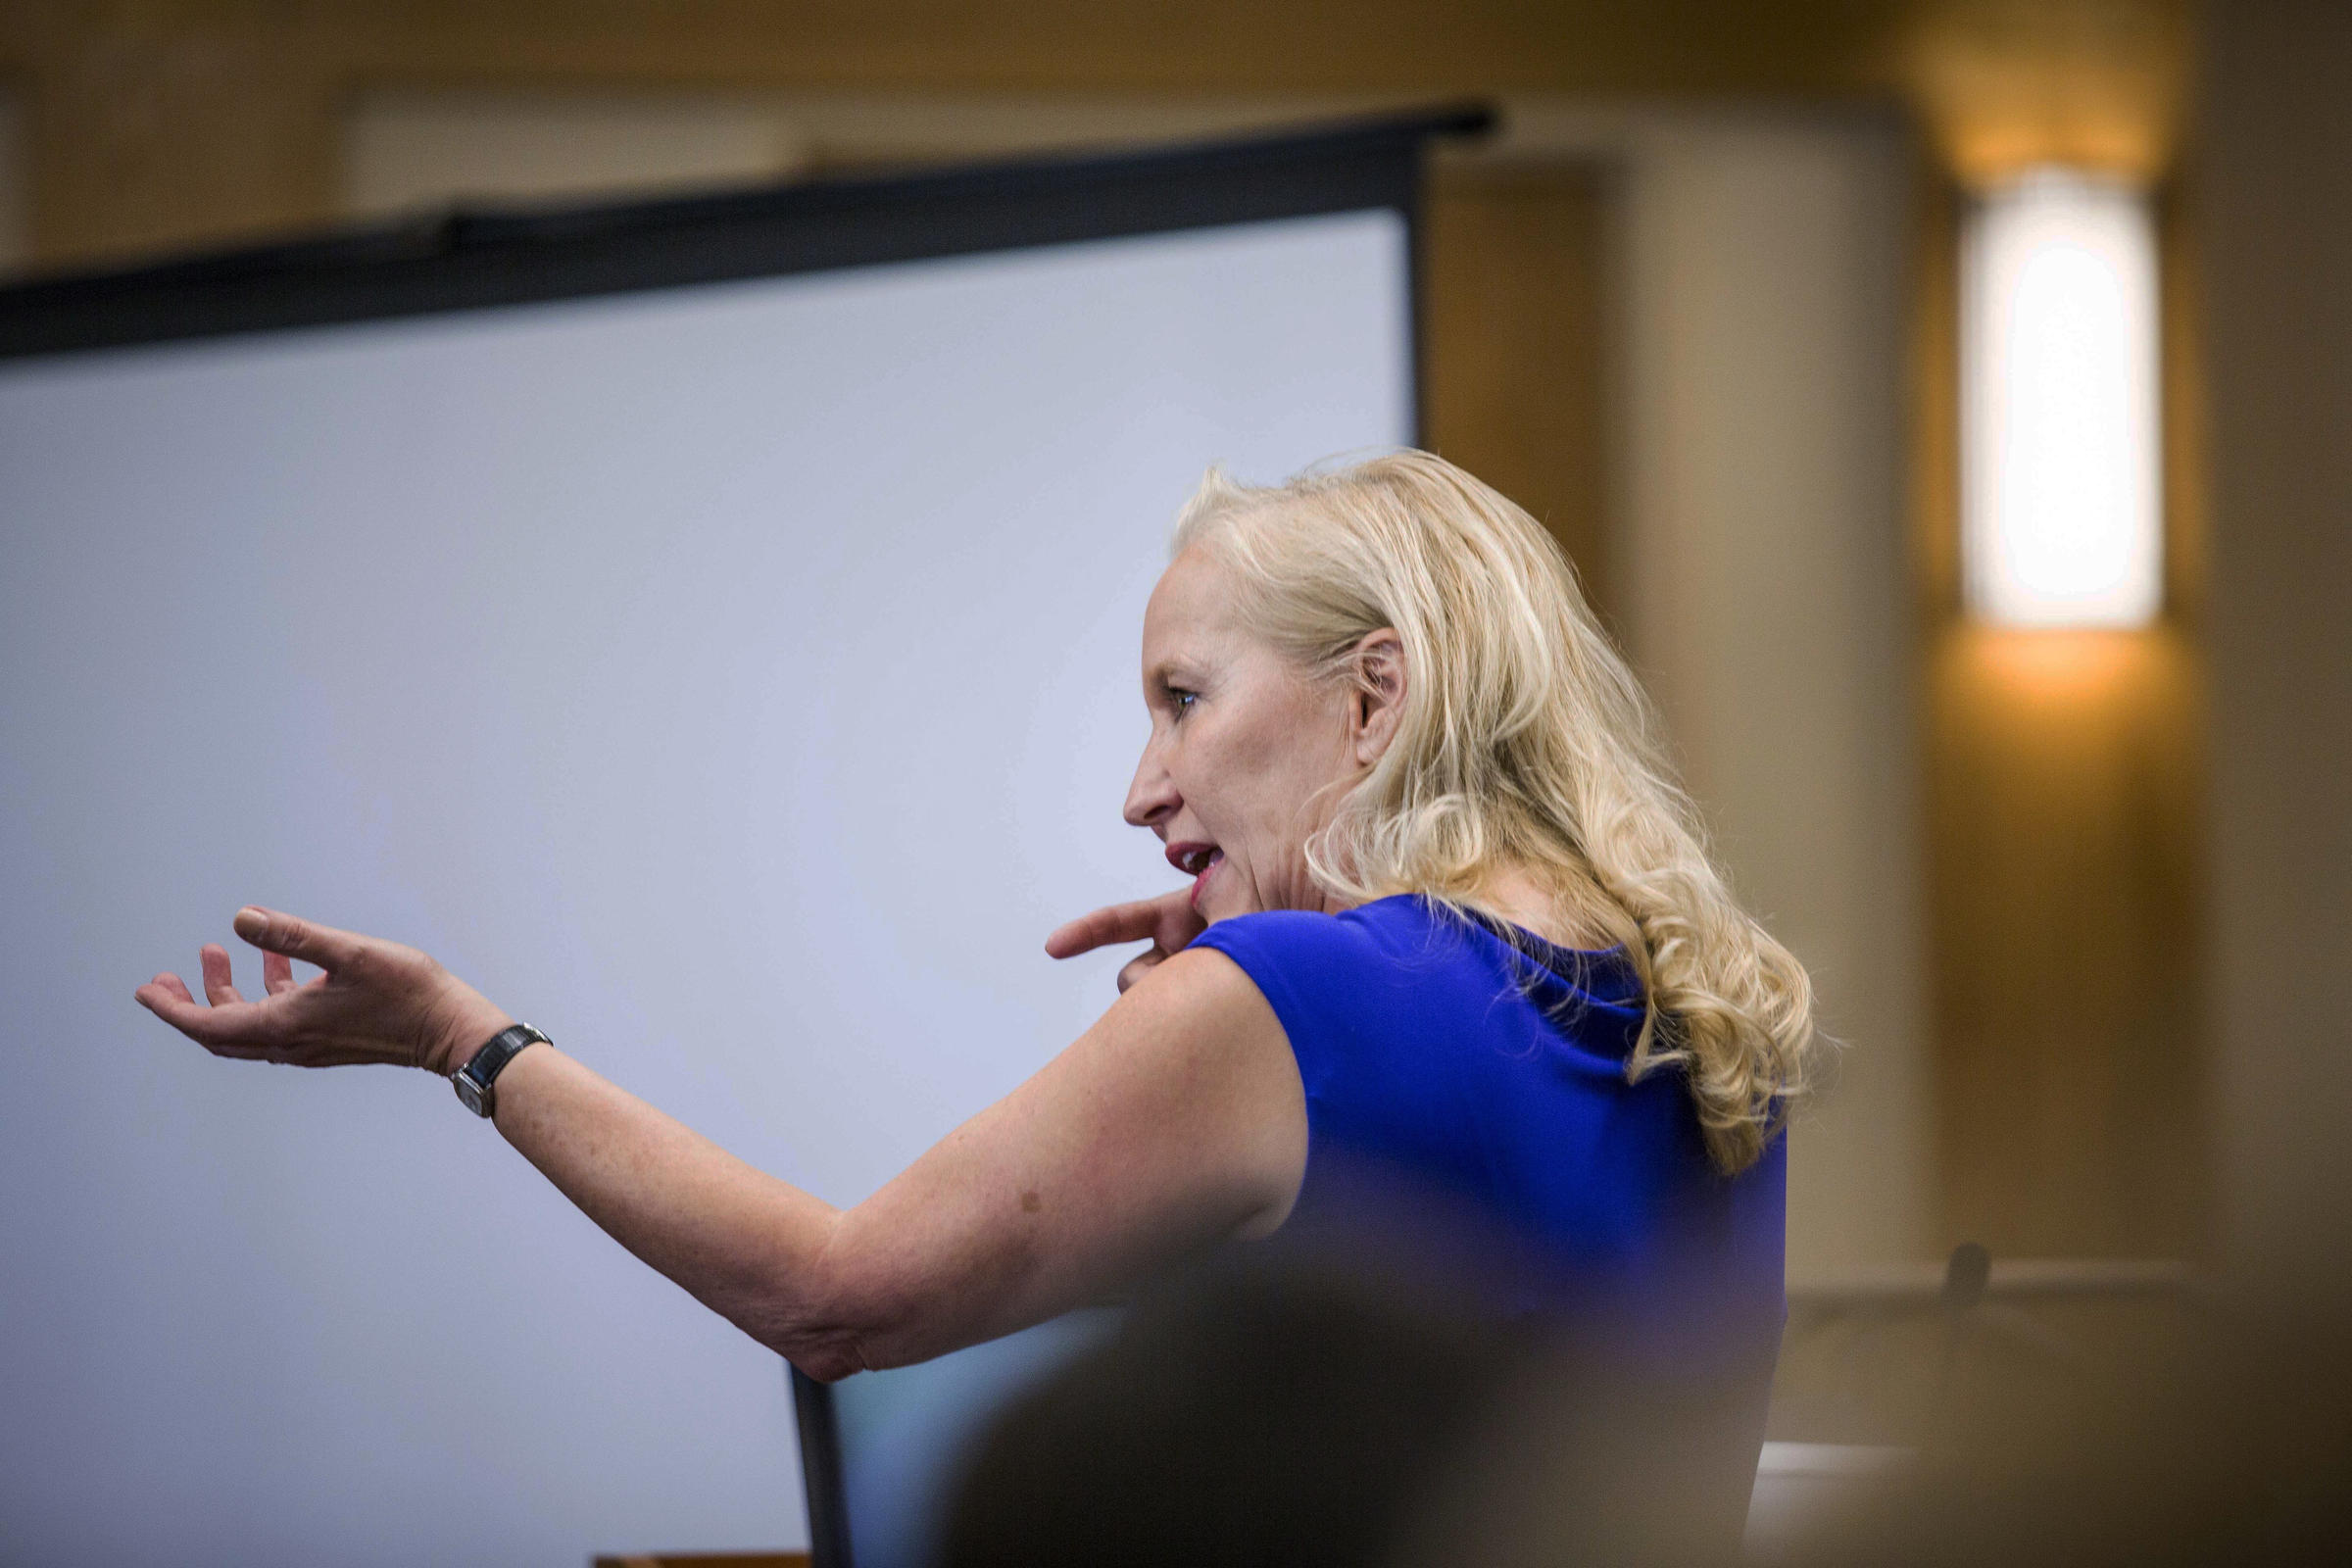 Special prosecutor Randi McGinn delivers opening statements in the trial of former police officers Dominique Perez and Keith Sandy, who are charged with the 2014 murder of James Boyd, in Bernalillo County Court court Monday, Sept. 19, 2016 in Albuquerque, NM. (AP Photo/Juan Labreche, Pool)